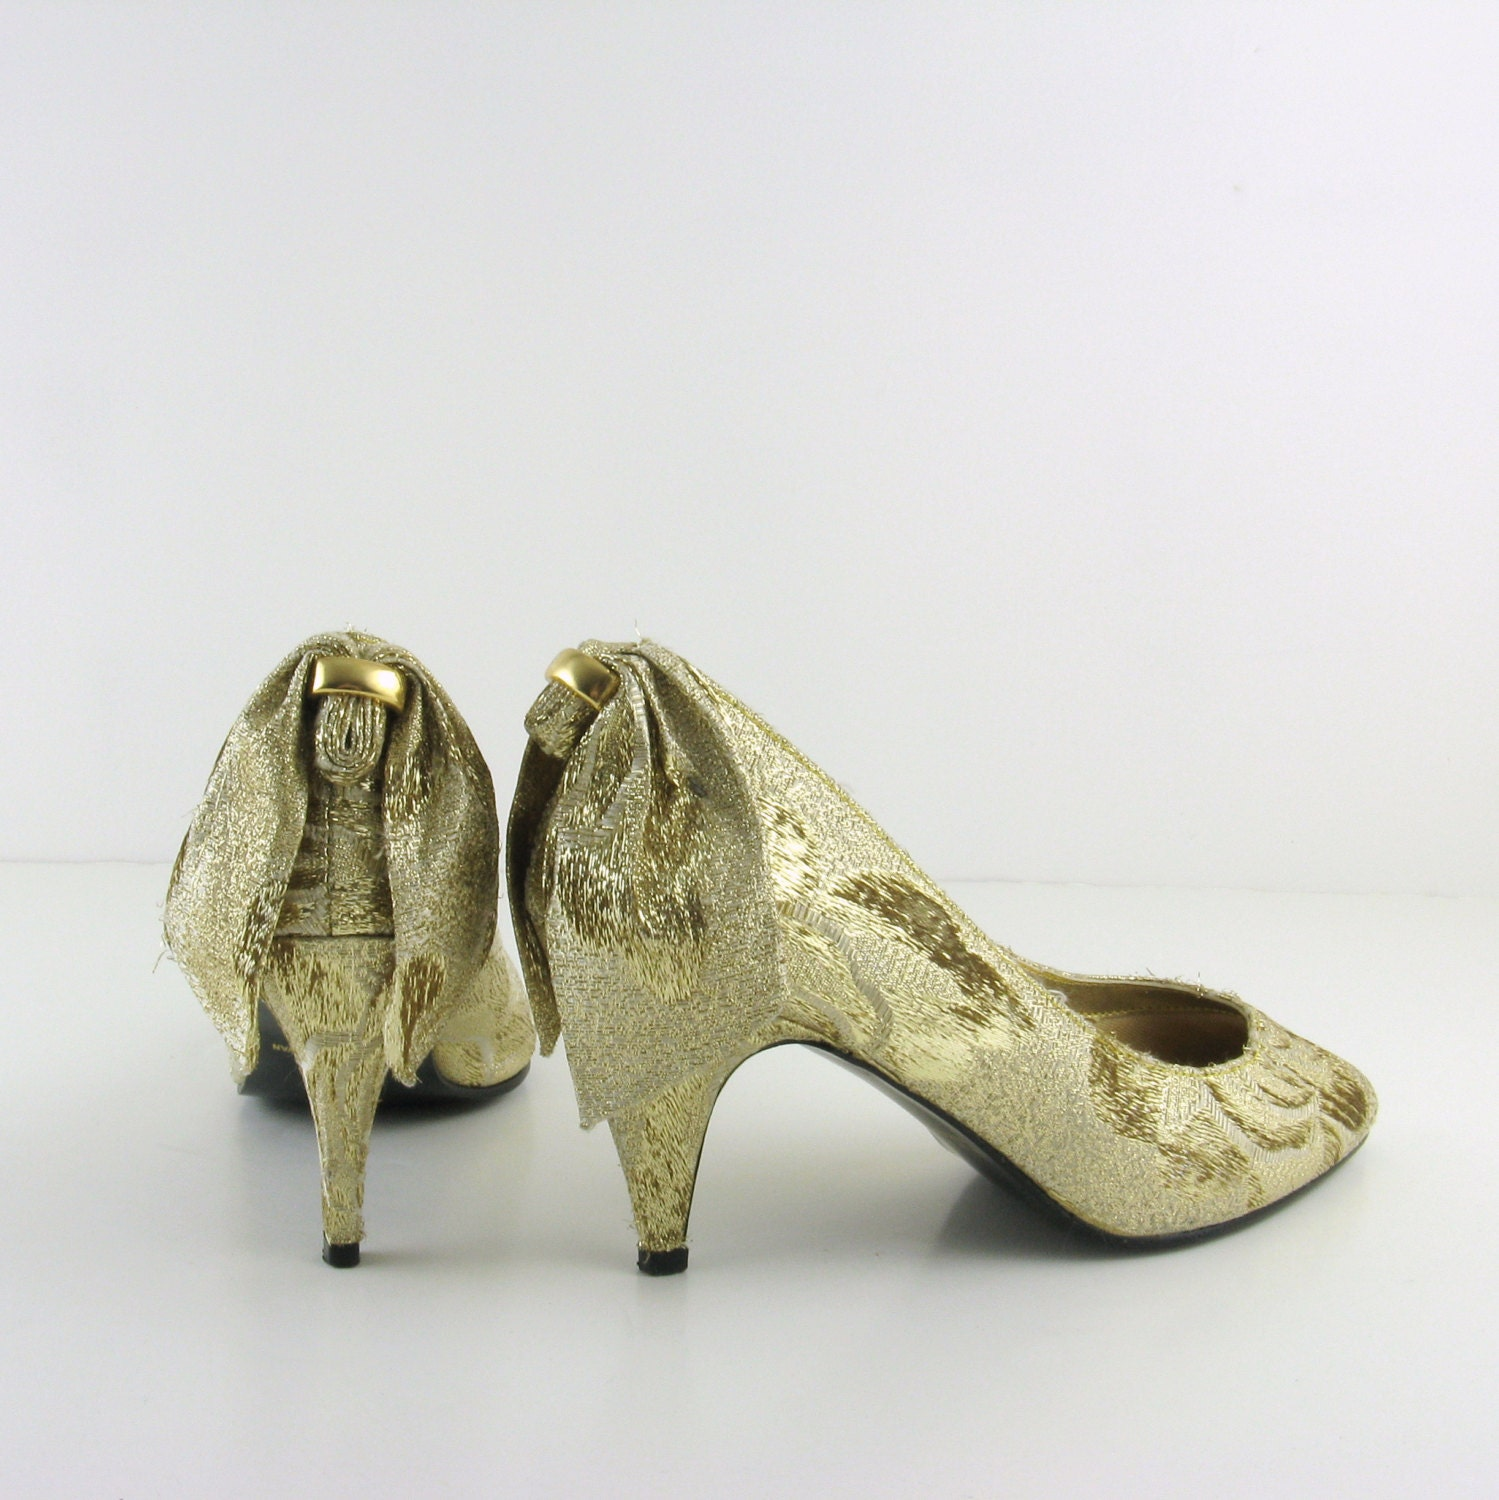 Vintage Gold Bow High Heels - 1980s Shoes Size 7 by After Midnight - TwoMoxie